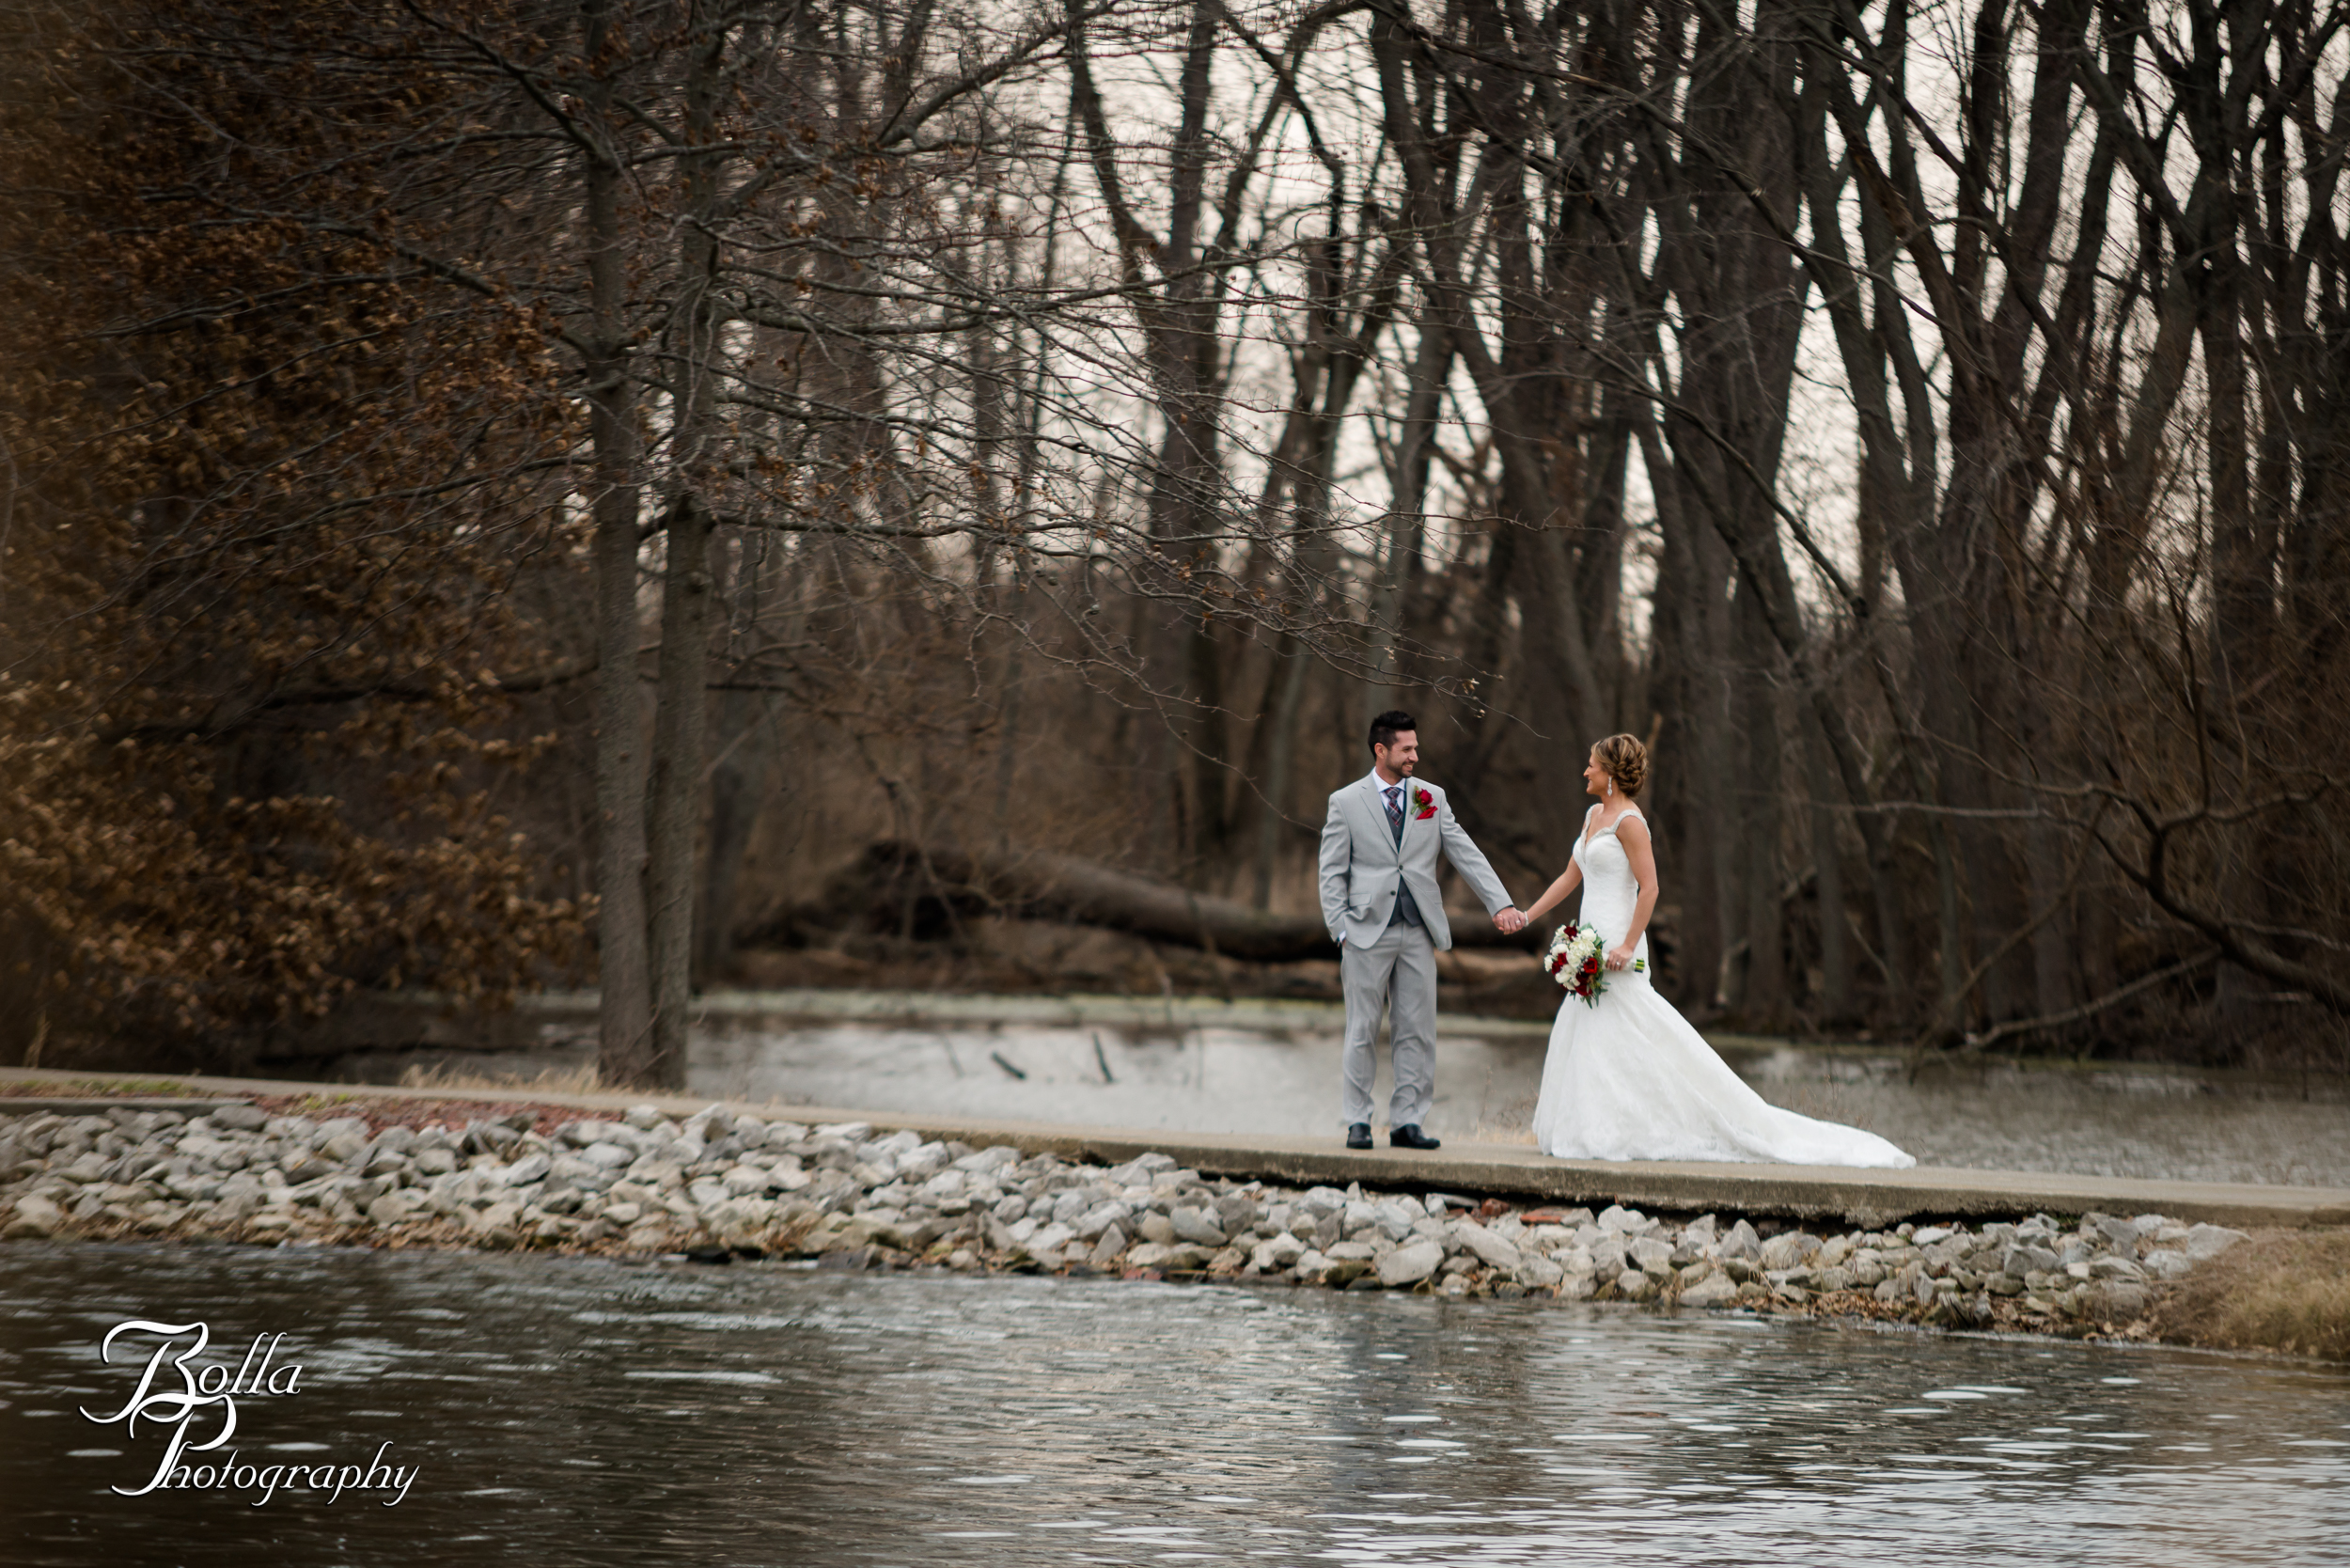 Bolla_photography_edwardsville_wedding_photographer_st_louis_weddings_highland_Allen_Warren_winter_red-0002.jpg